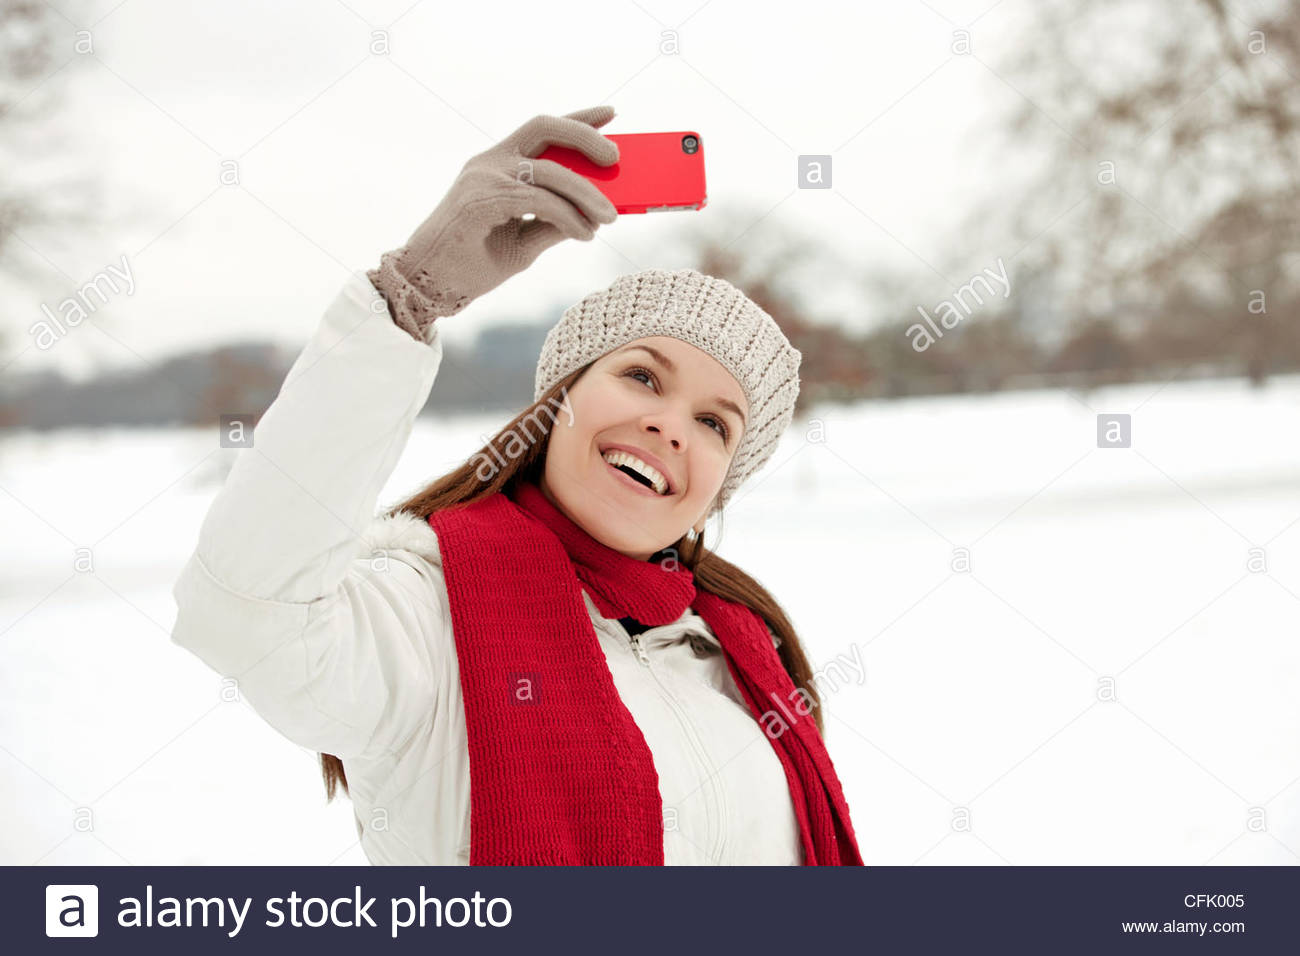 A young woman taking a photograph of herself in the snow - Stock Image